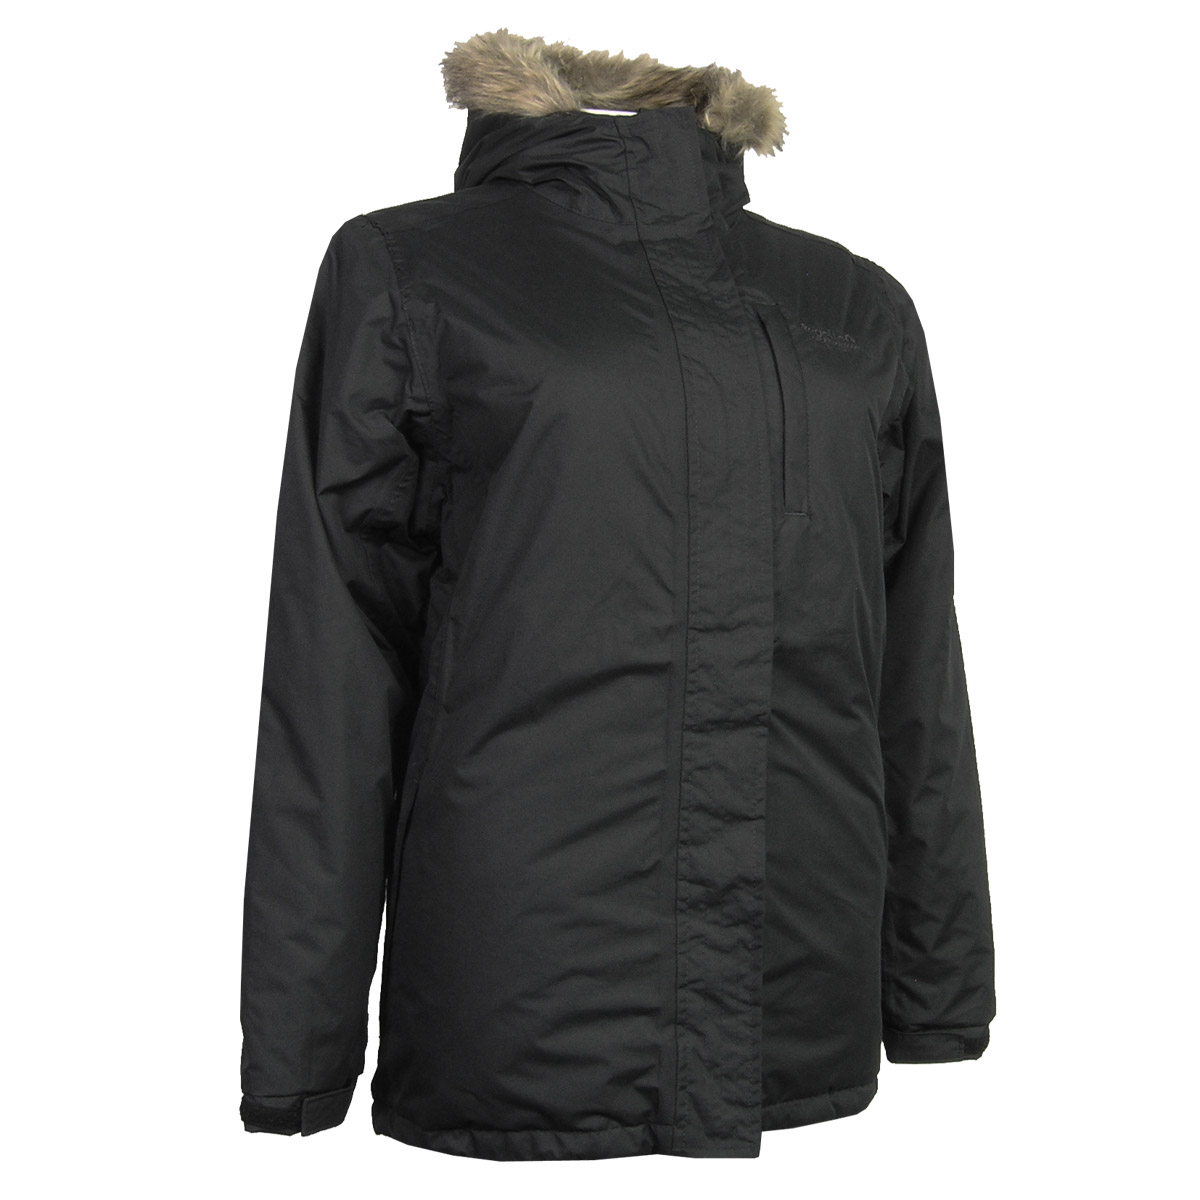 regatta raincloud jacket damen winterjacke outdoorjacke parka anorak rwp090 ebay. Black Bedroom Furniture Sets. Home Design Ideas